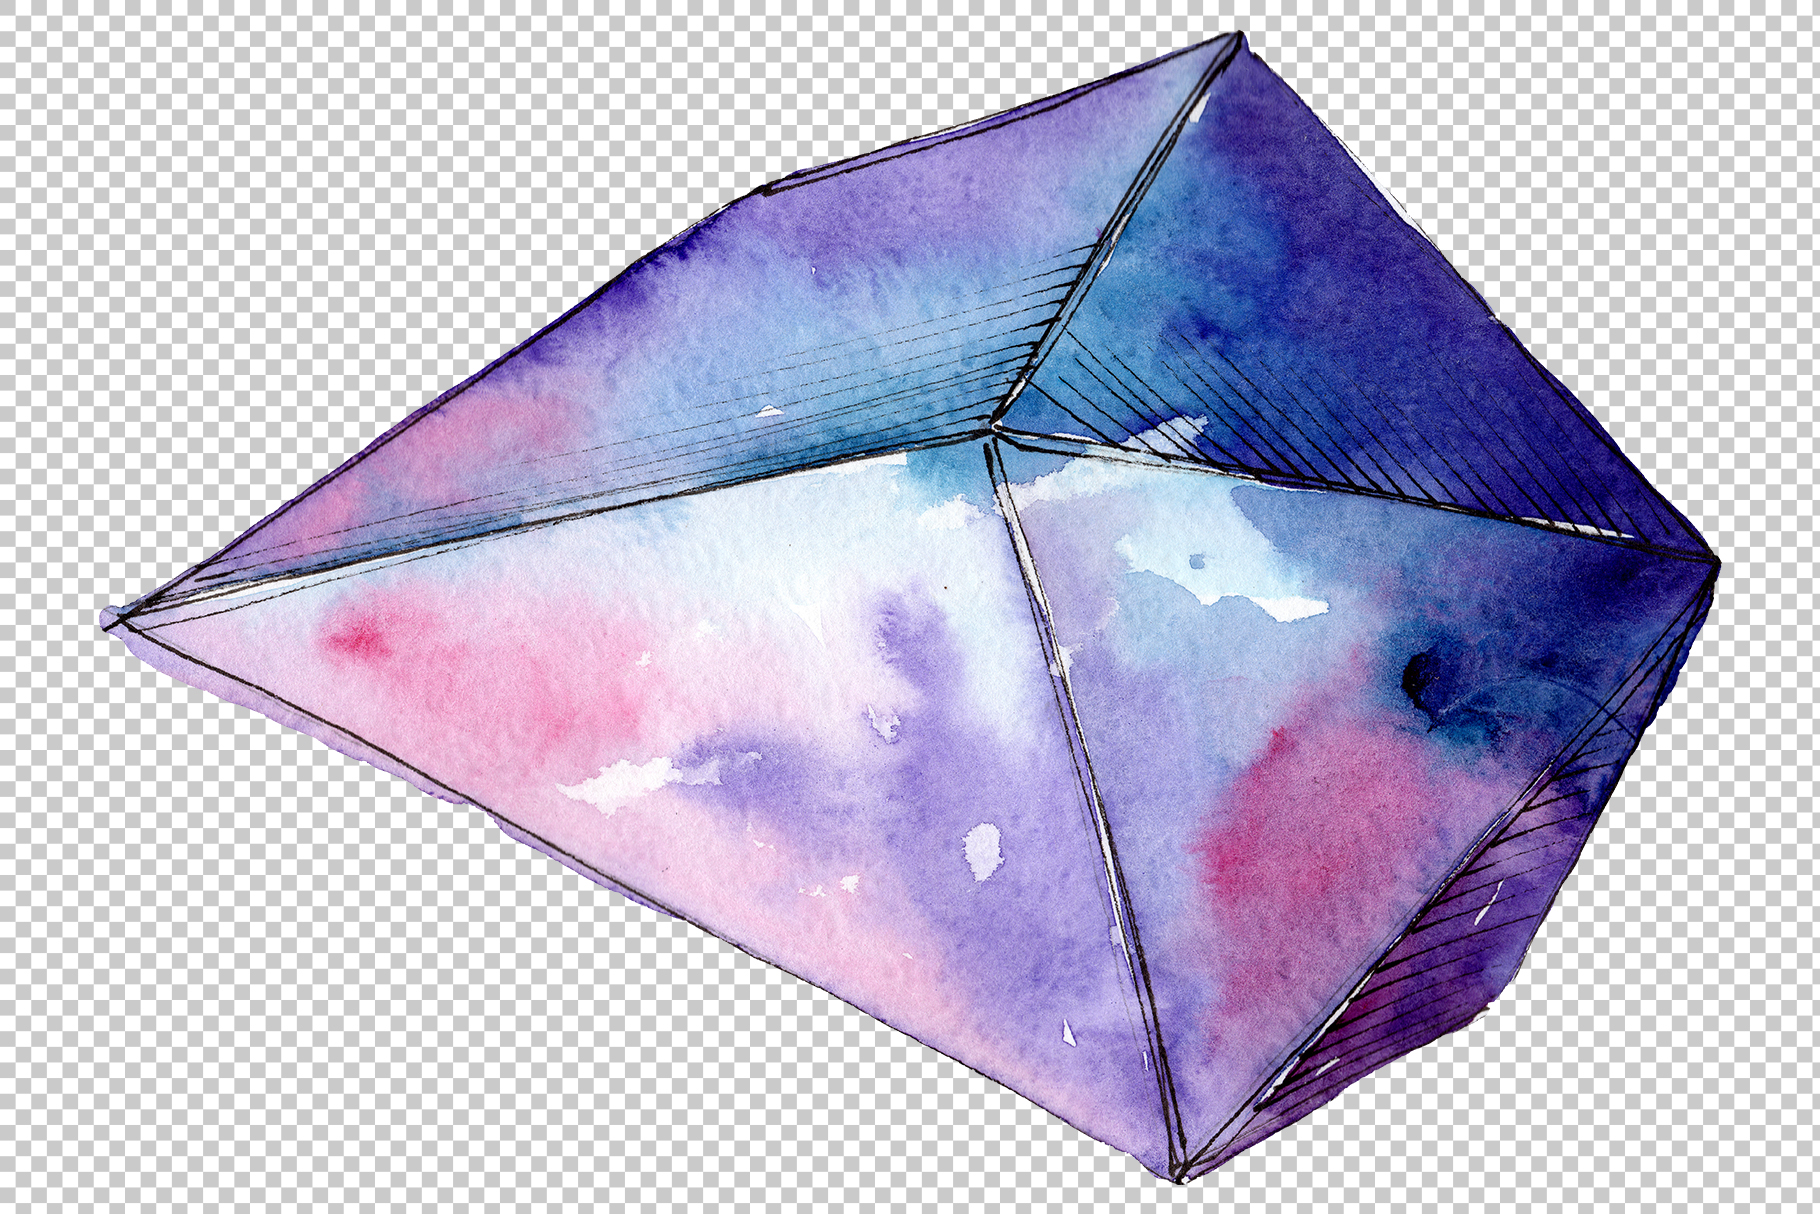 Violet crystals Watercolor png example image 4